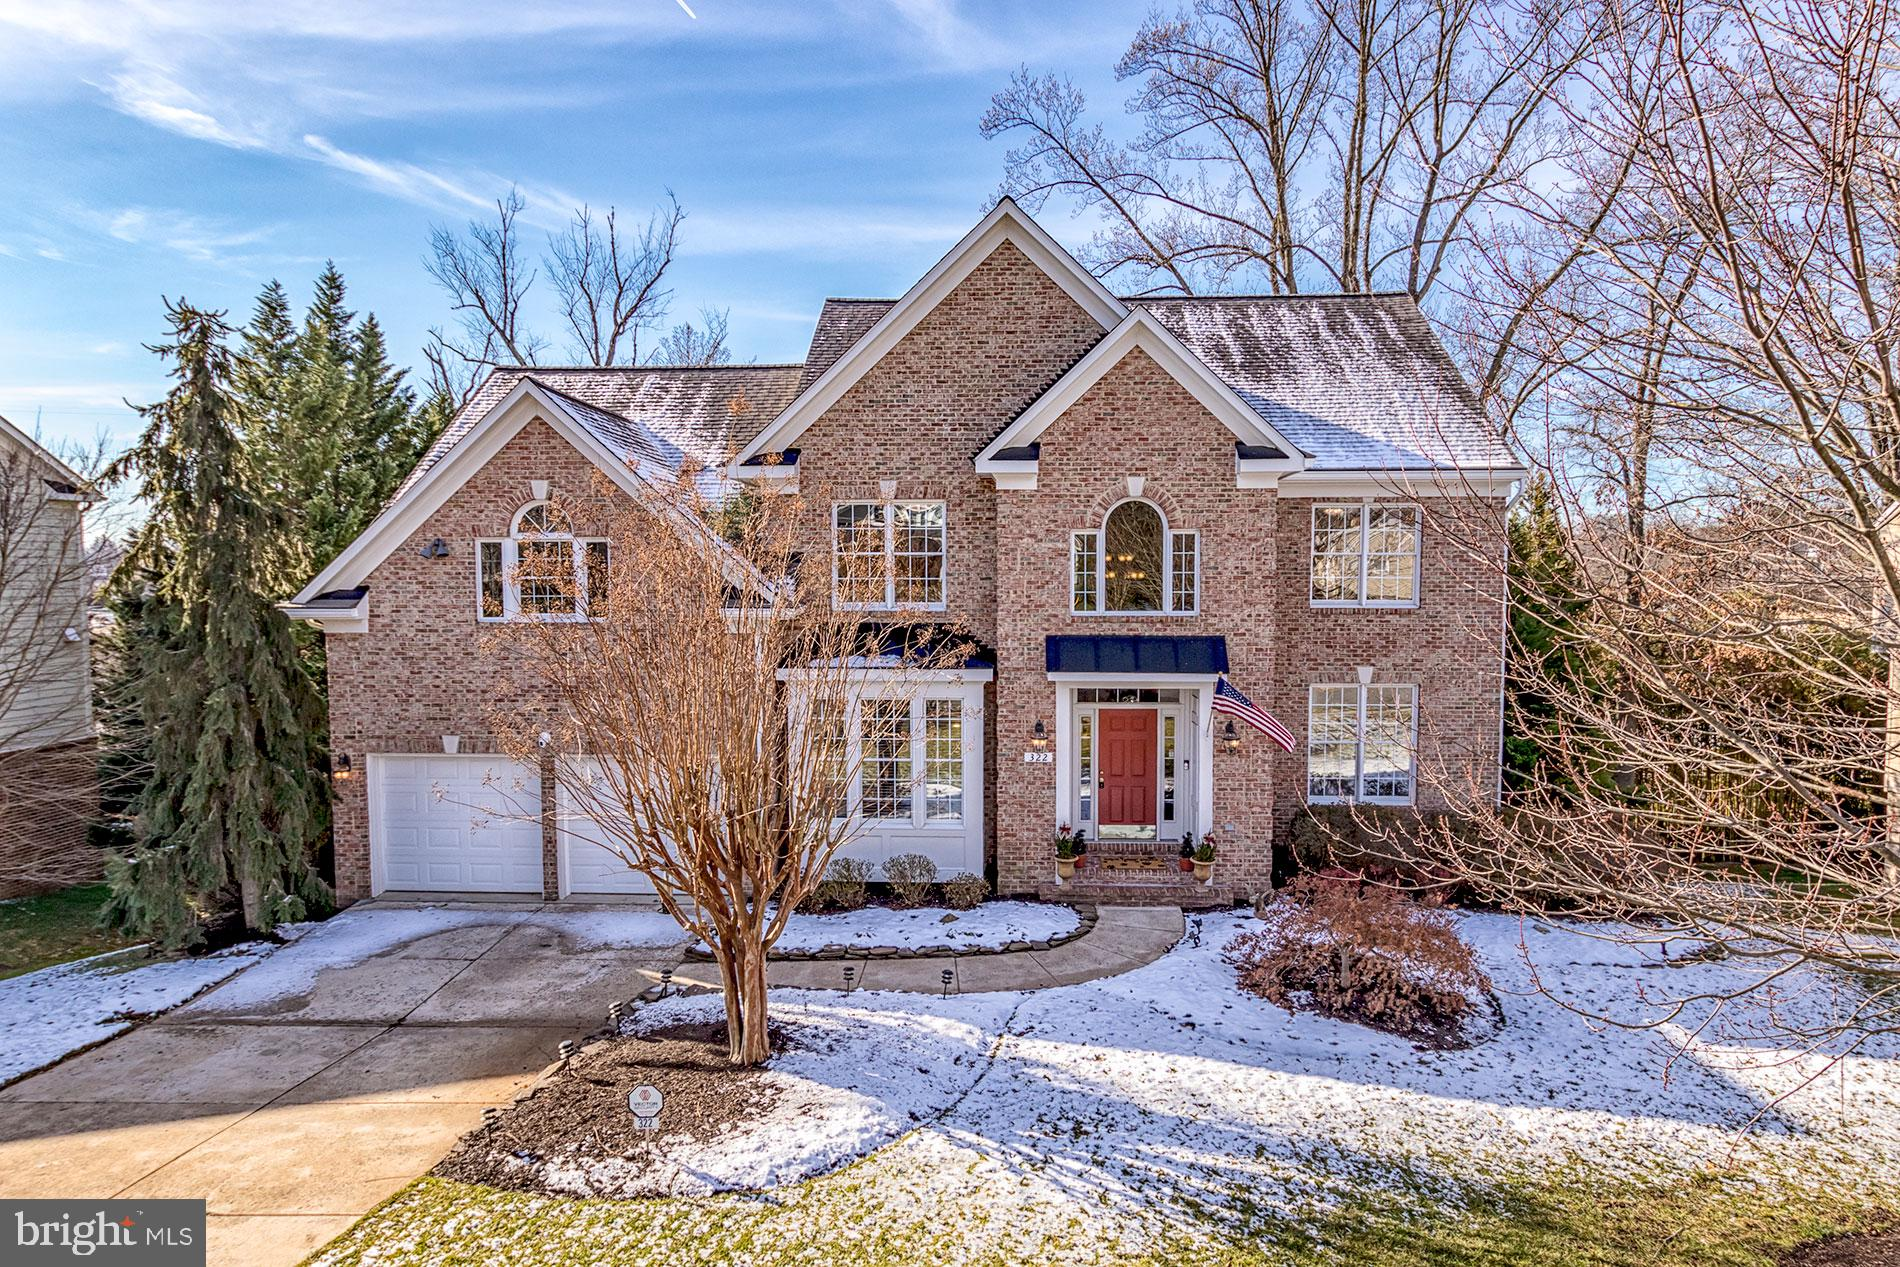 Beautiful colonial home in the heart of Downtown Vienna. Quiet .31 acres backing to trees. Elegant i